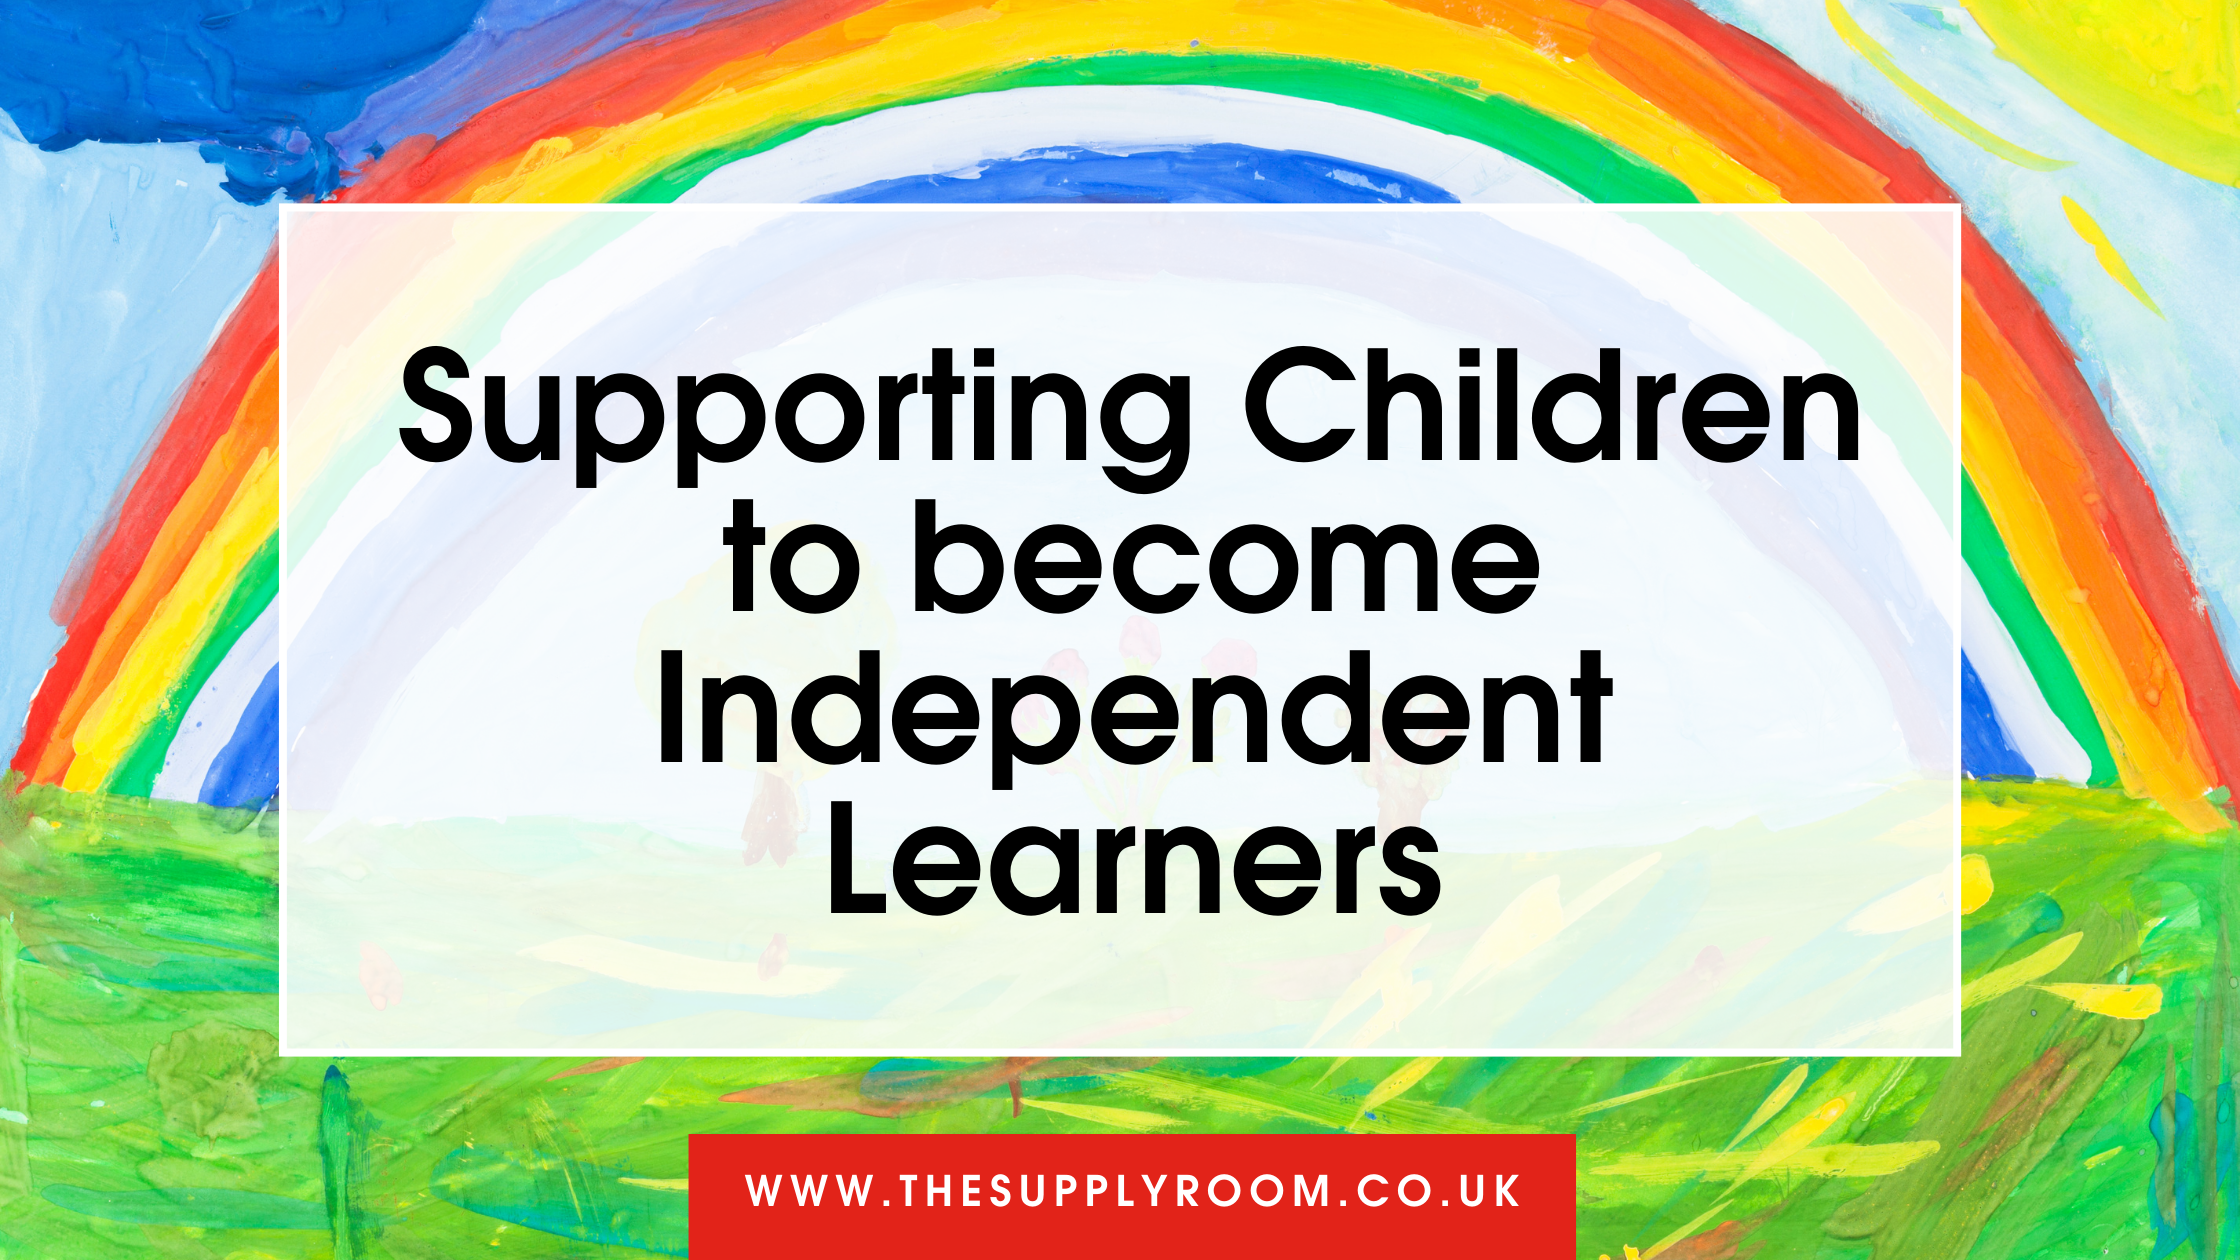 Supporting Children to become Independent Learners